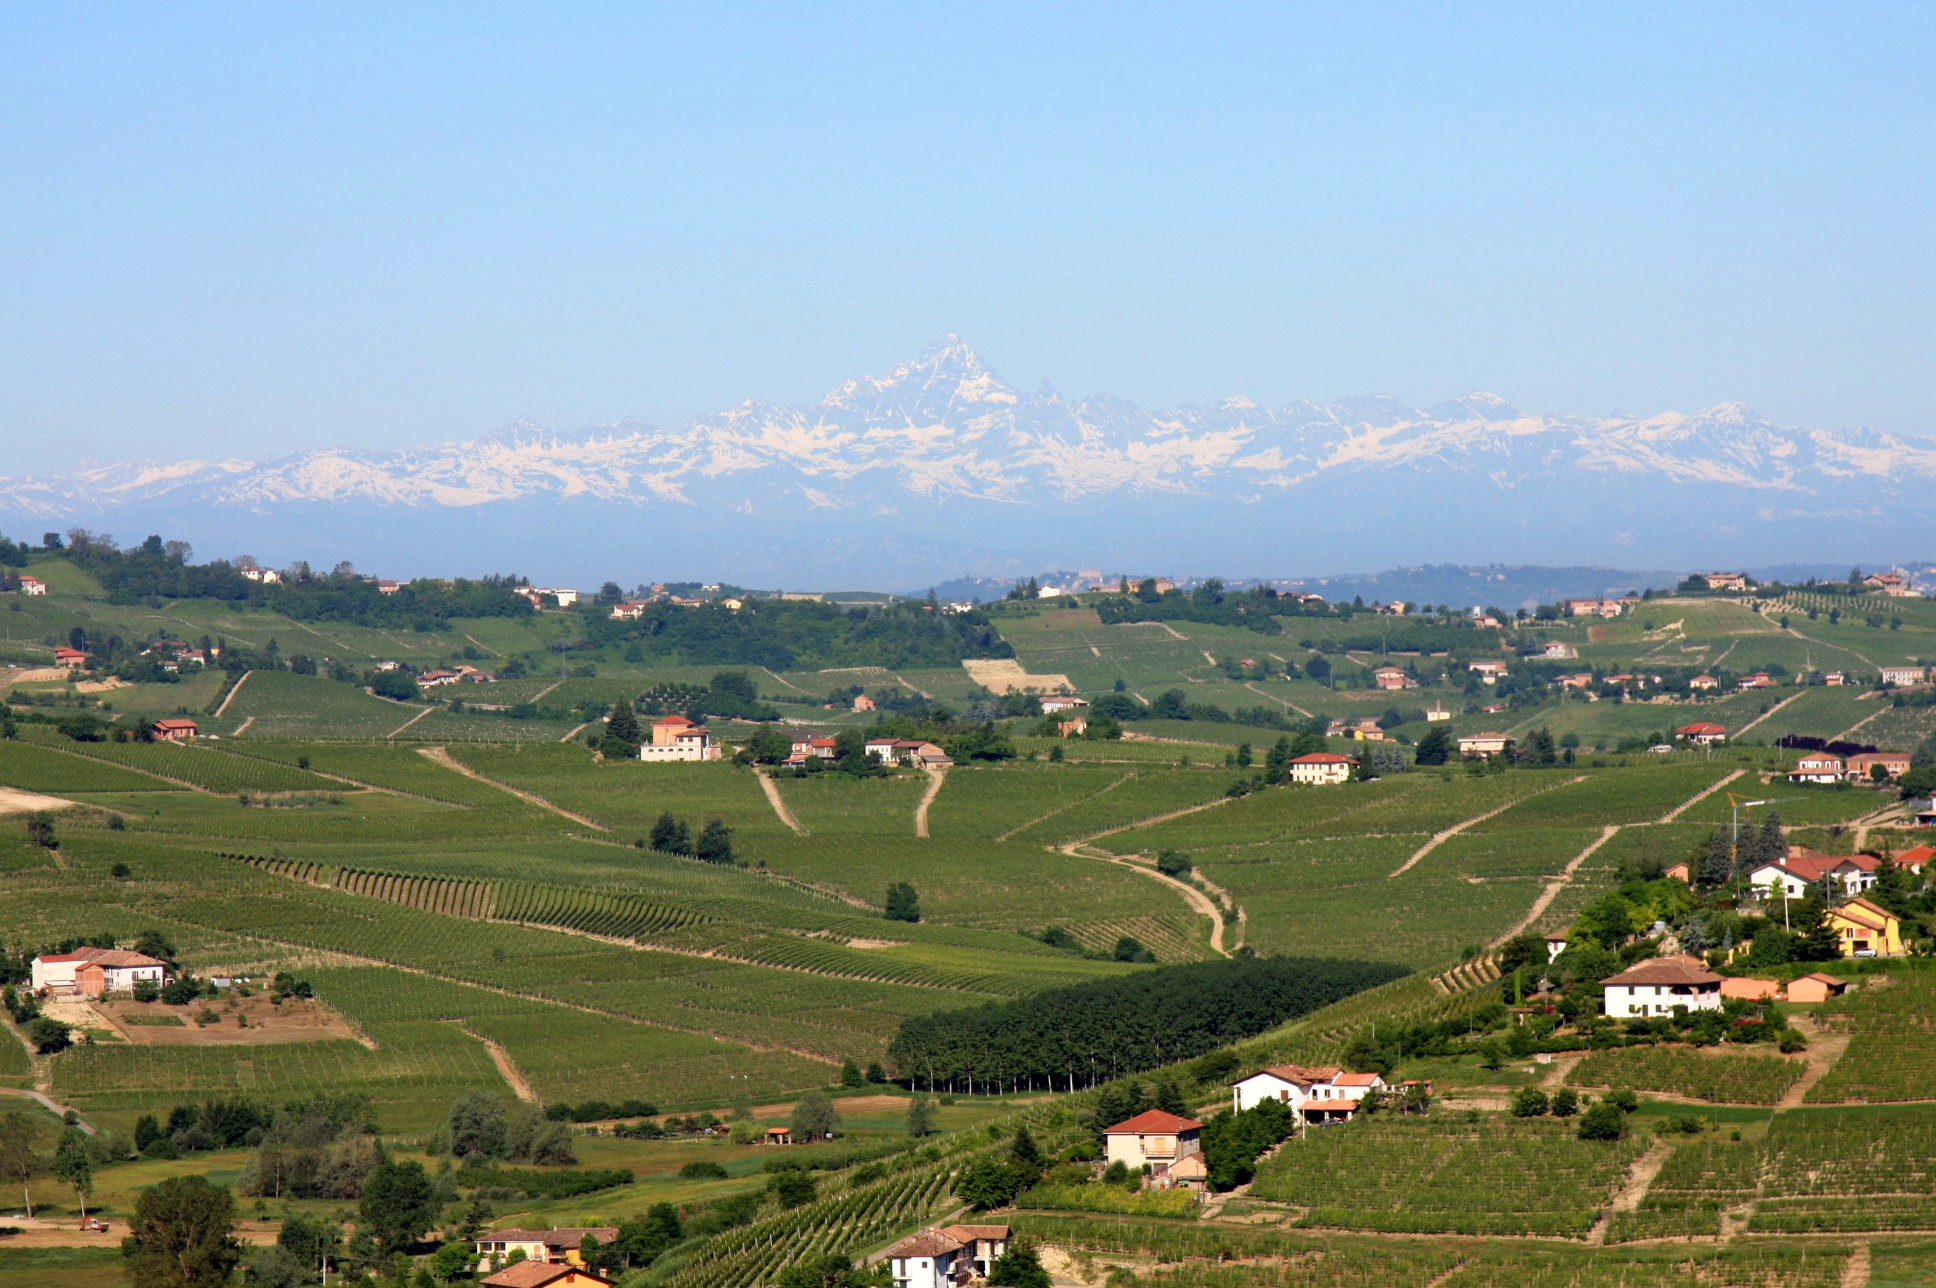 Monviso taken from San Marzano Oliveto, 60 miles (96 kilometers) away